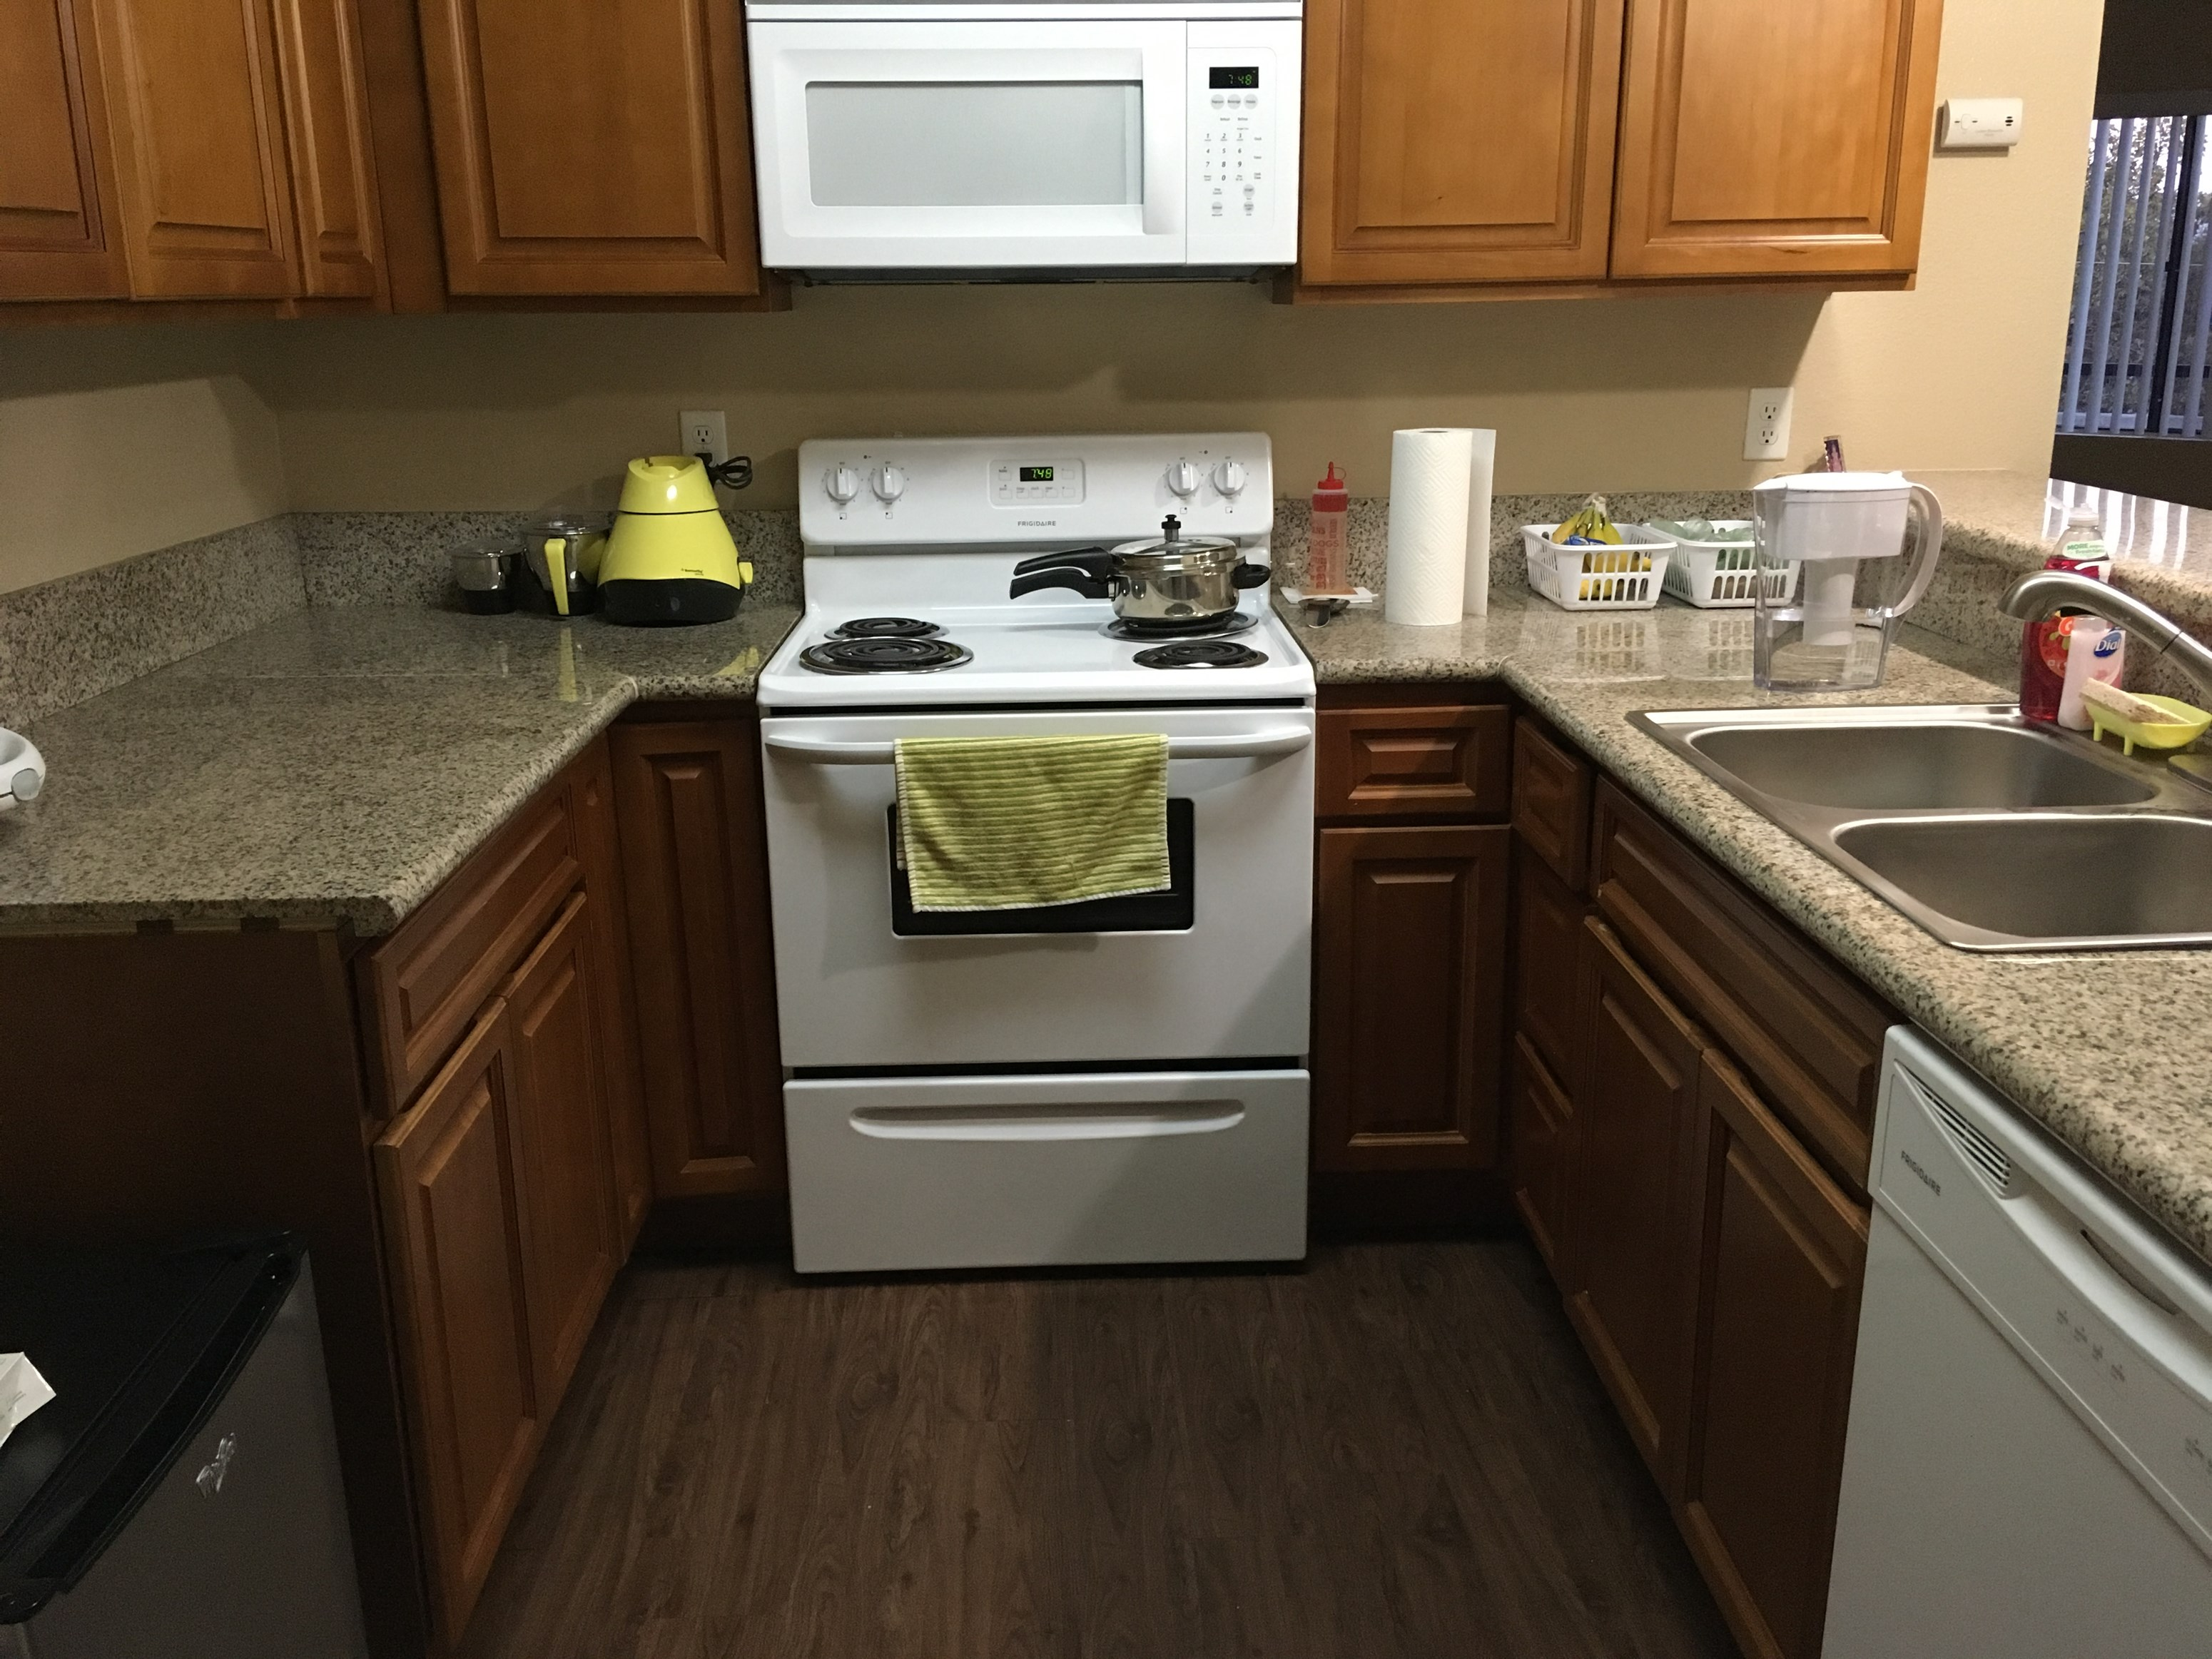 housing for student near irvine valley college ivc in irvine ca